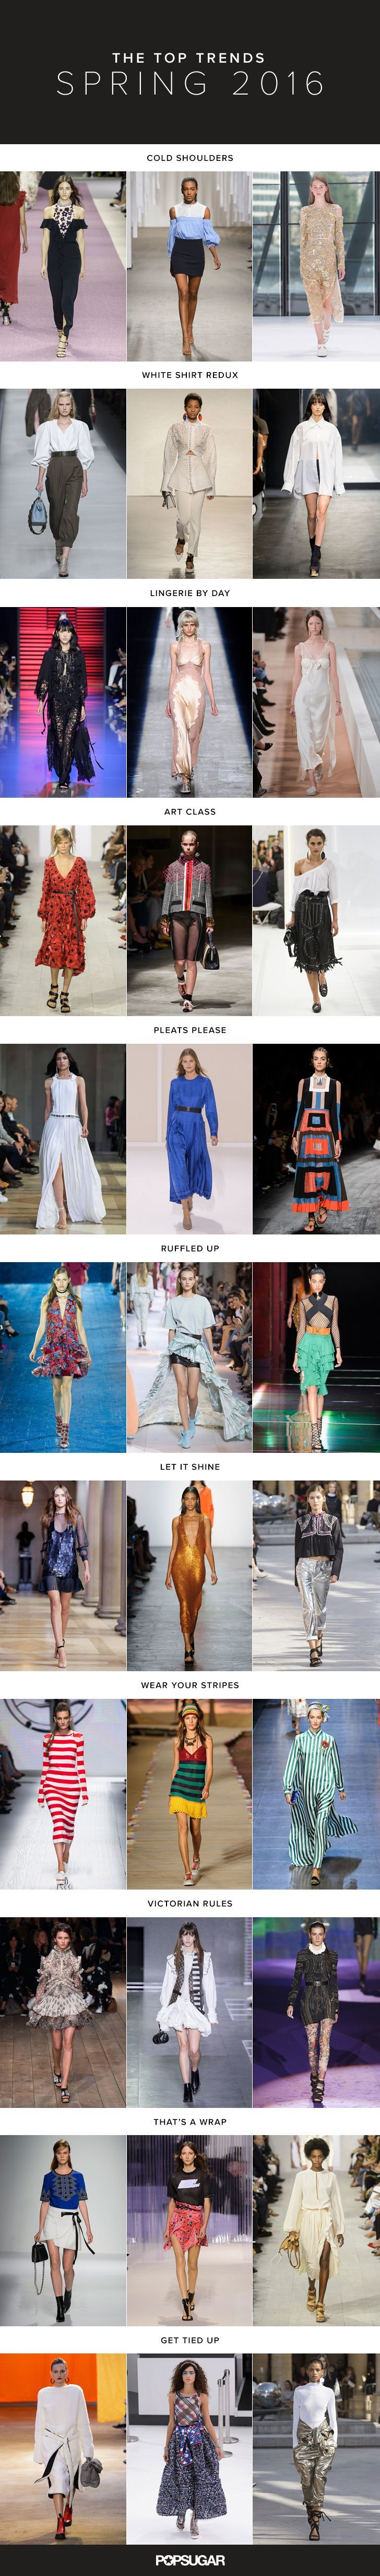 All the trends you need to know for Spring 2016